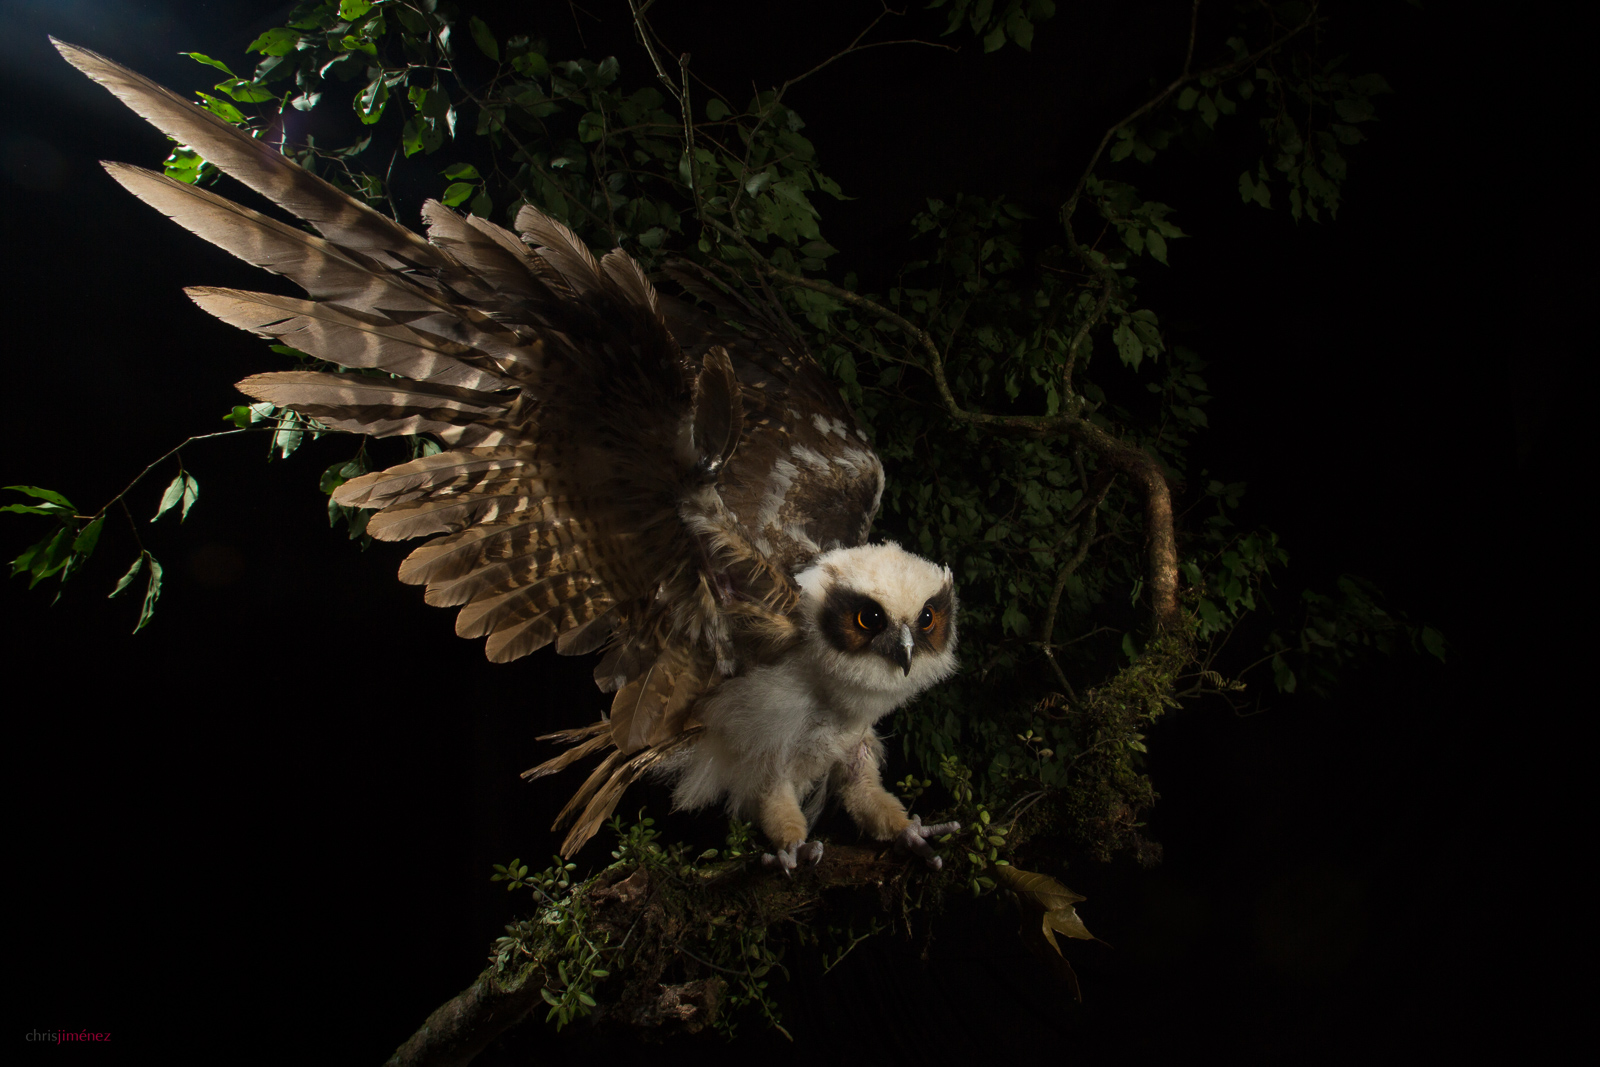 Crested Owl (Lophostrix cristata) juvenile, at night , landing in a branch at Cinchona, Costa Rica http://www.chrisjimenez.net